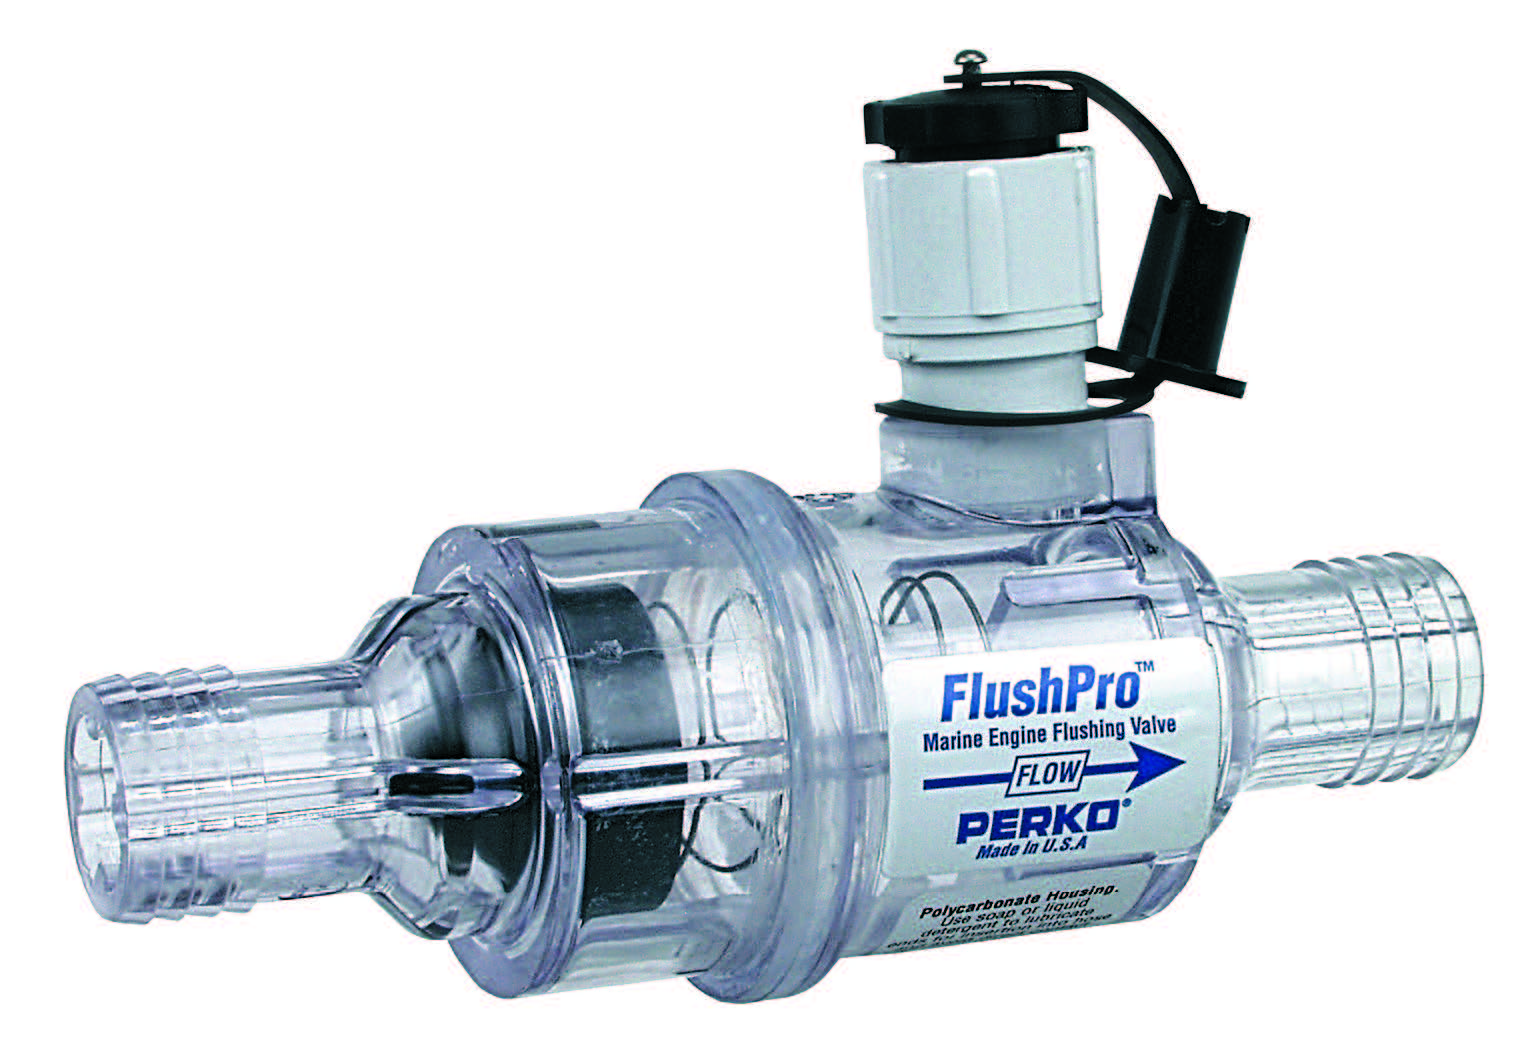 Perko flush pro instructions